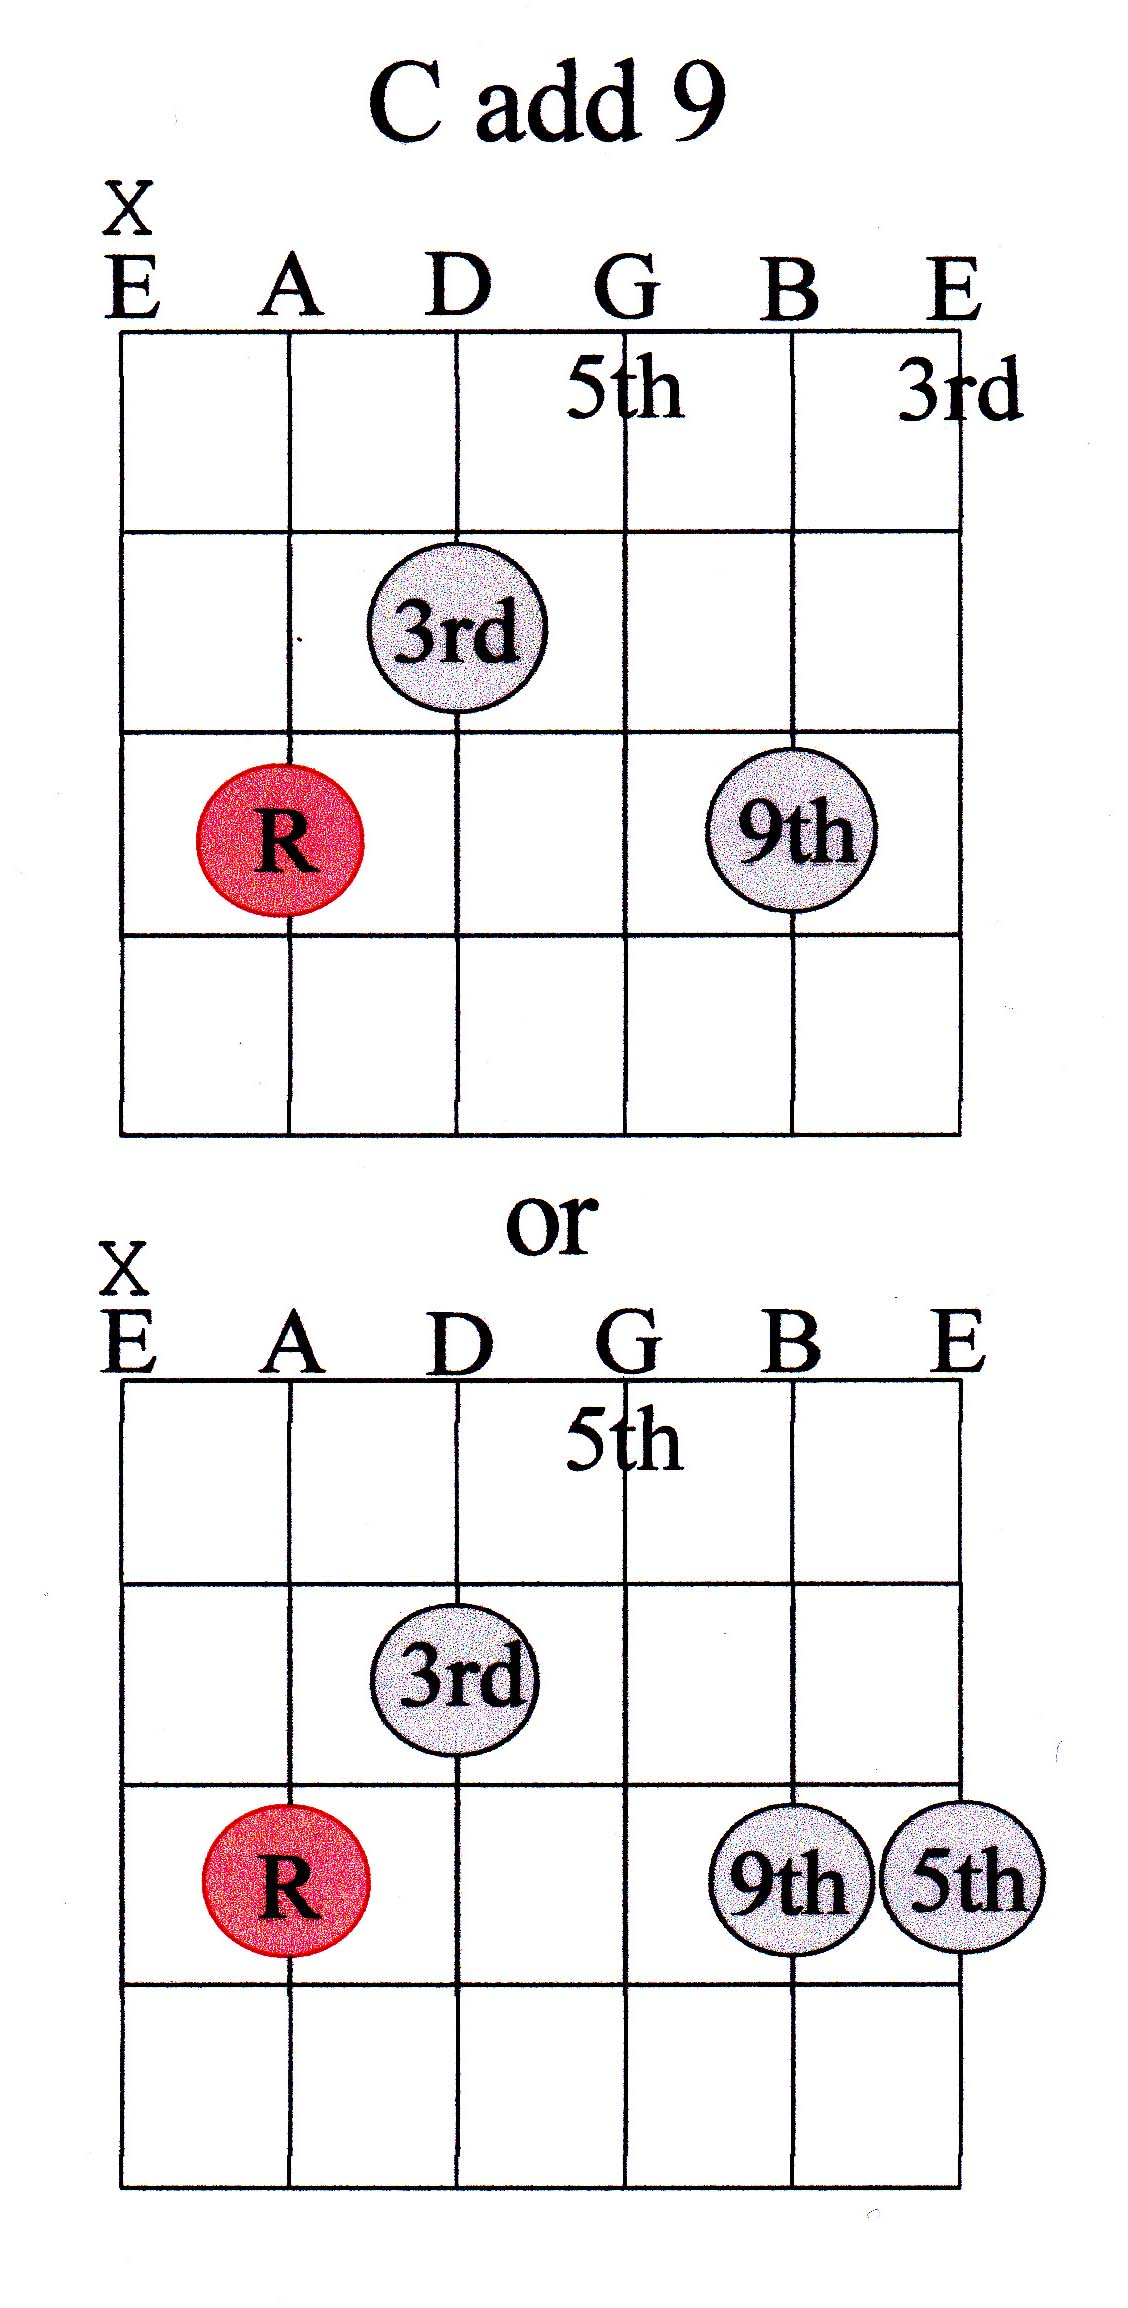 Guitar chord guide advanced marcus curtis music 18 chord hexwebz Image collections